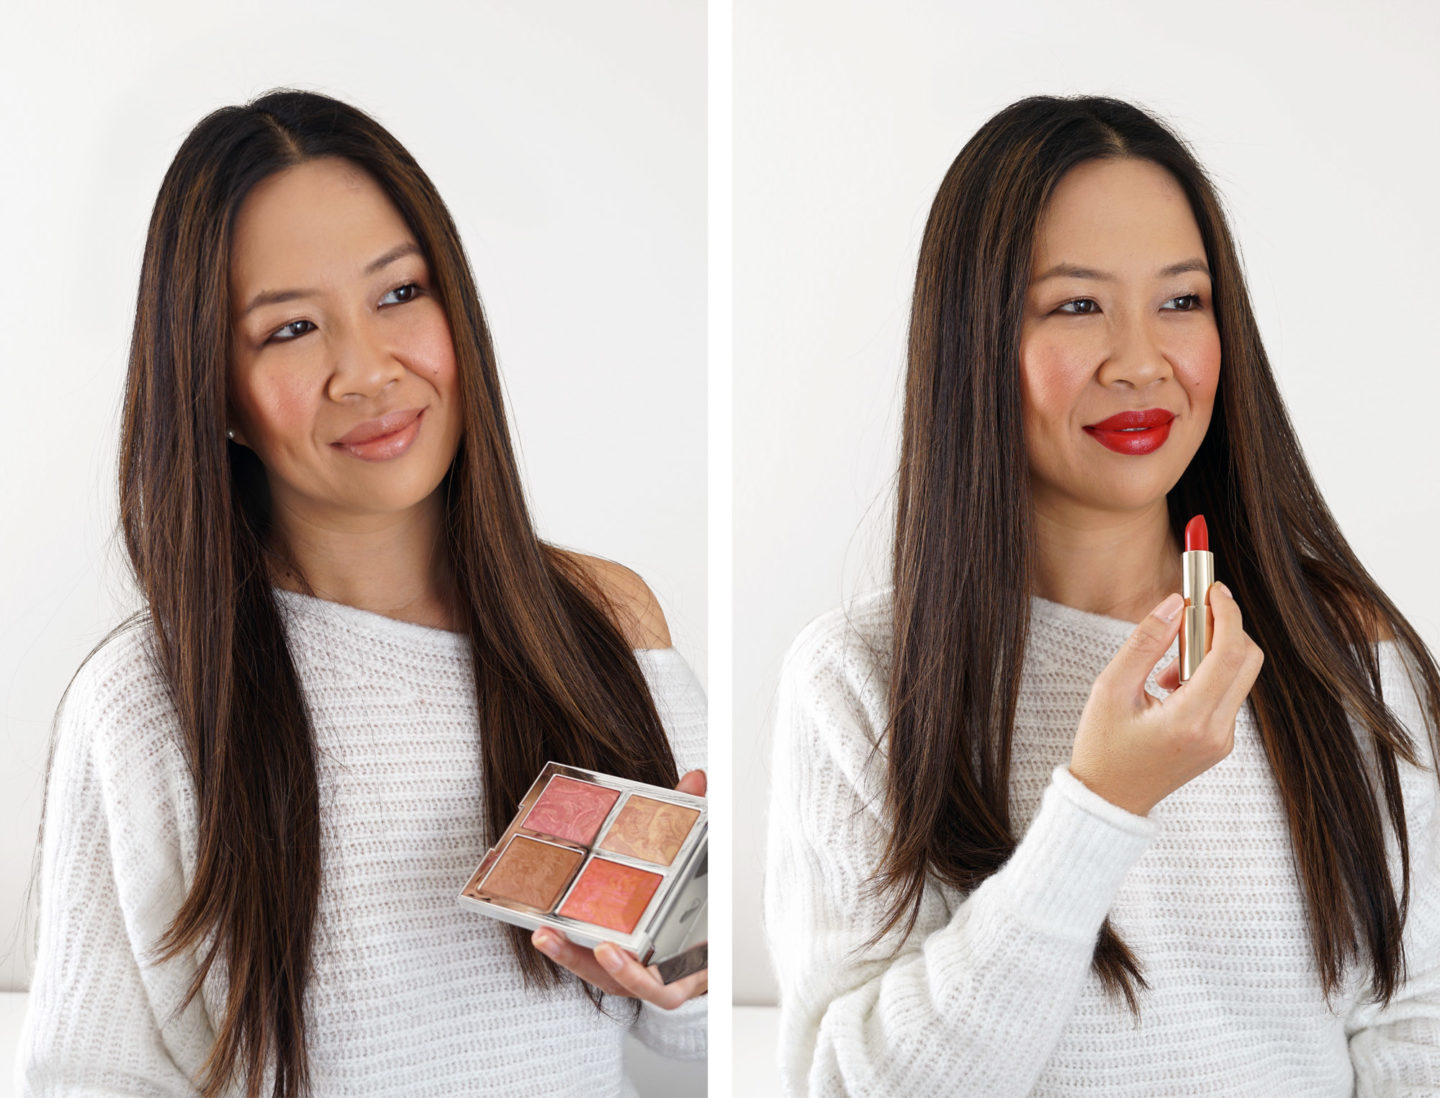 Becca BFF Made with Love par Malika Maquillage | Le look book beauté